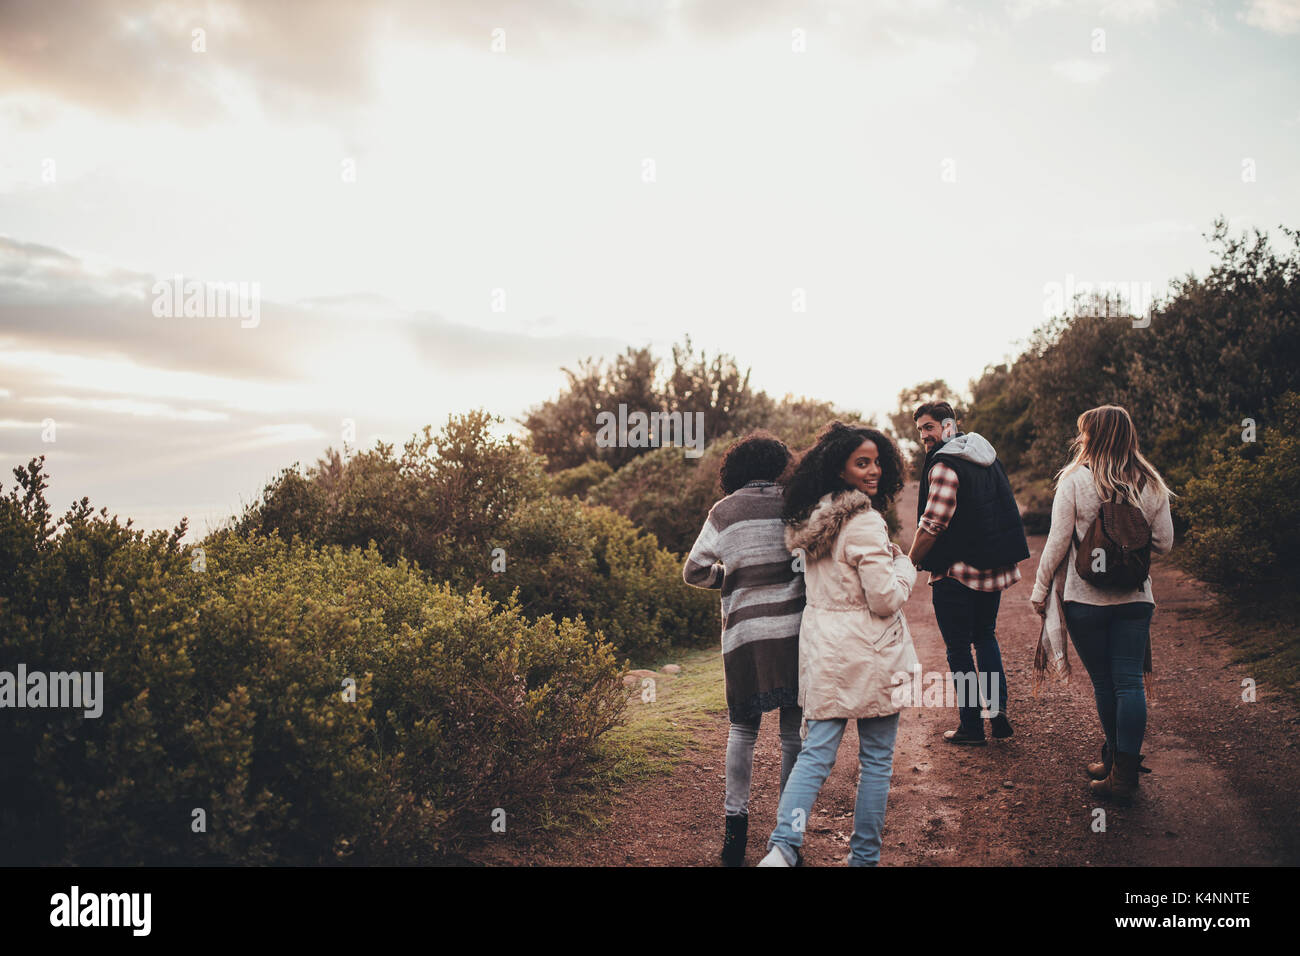 Friends hiking in nature. Group of man and women walking along the countryside road. Woman turning around and looking at camera. - Stock Image